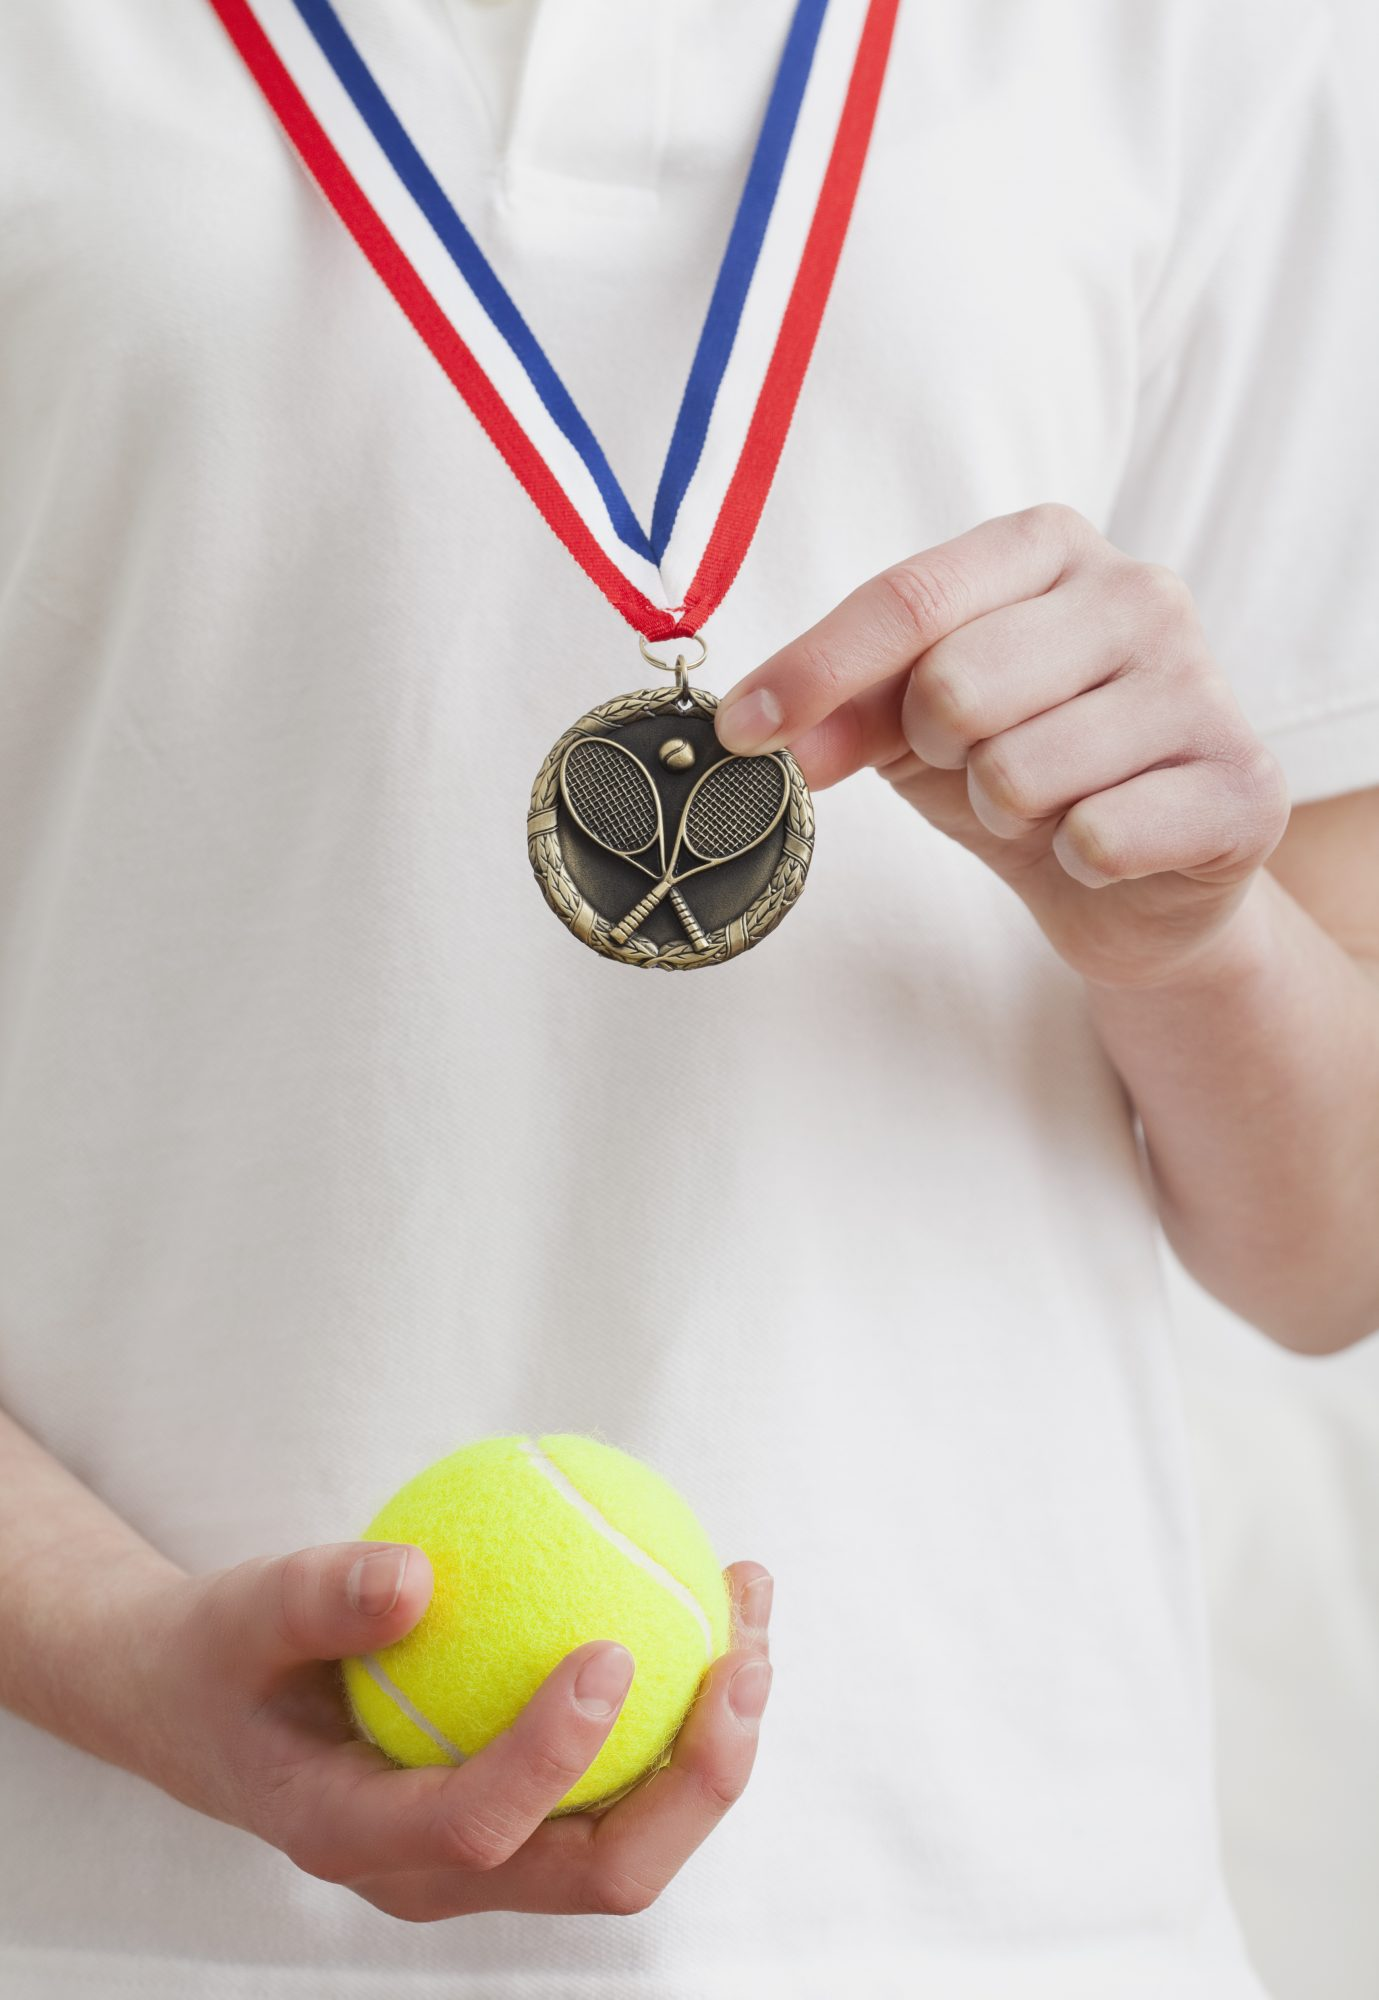 Kid with a medal and a tennis ball.